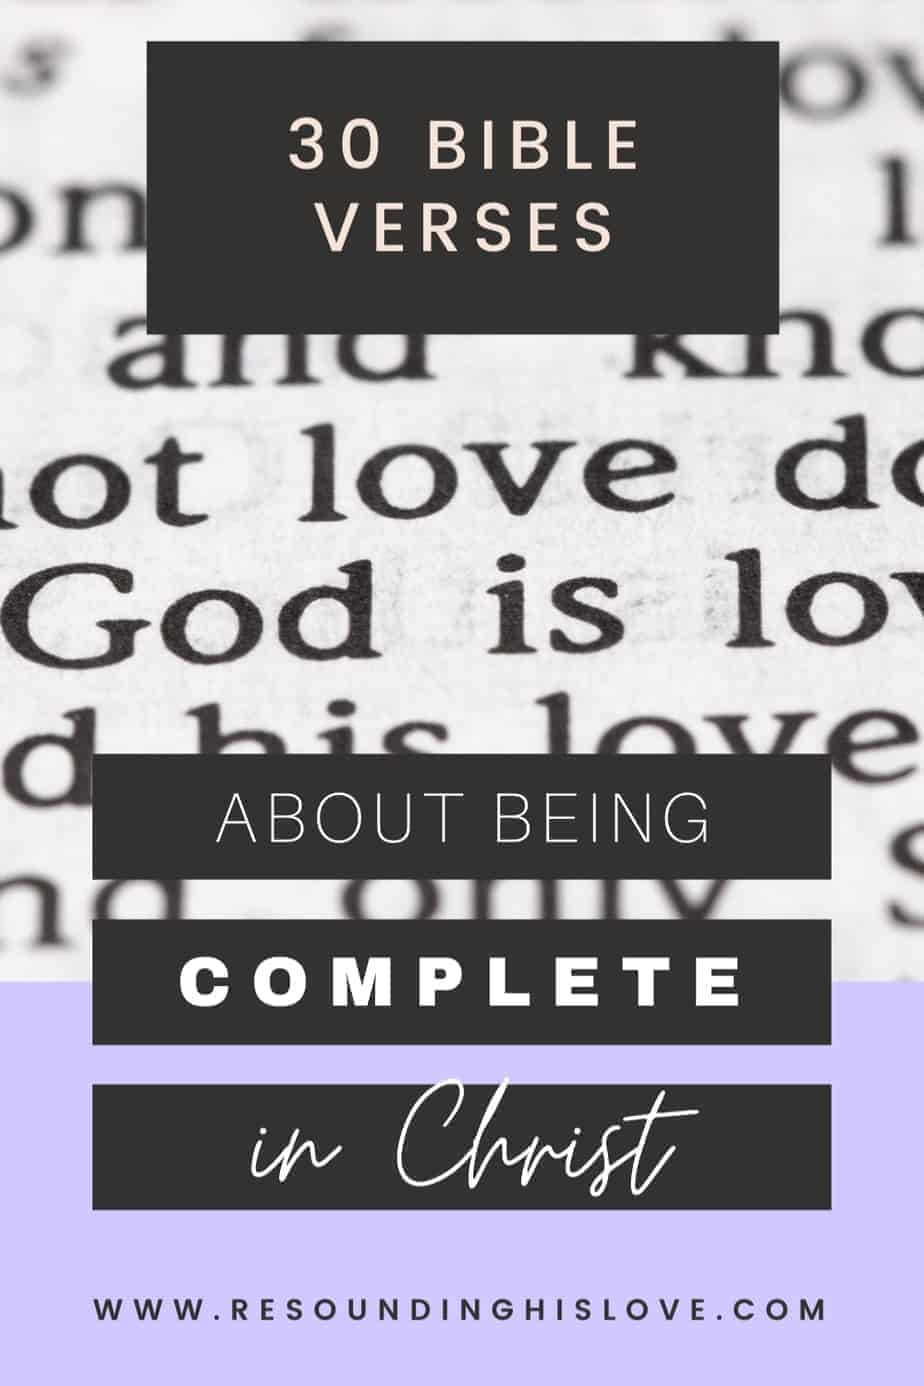 an open bible of scriptures with text 30 Bible Verses About Being Complete in Christ